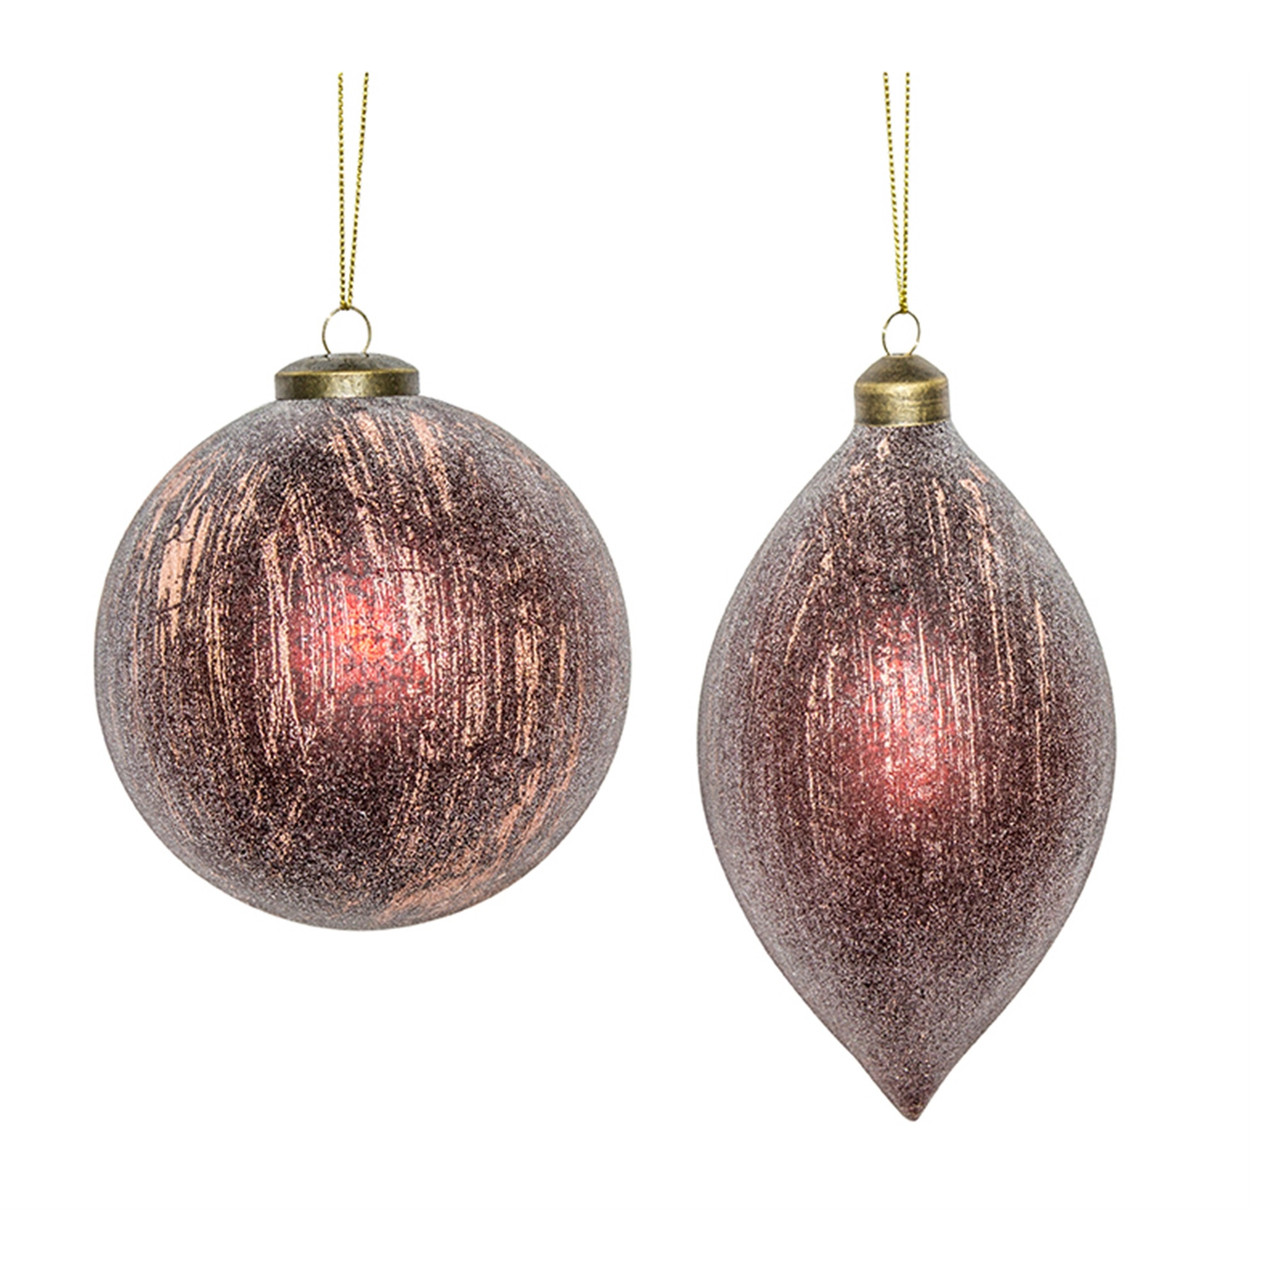 Set Of 6 Maroon Decorative Hanging Glass Ball And Finial Ornaments 7 25 32795377